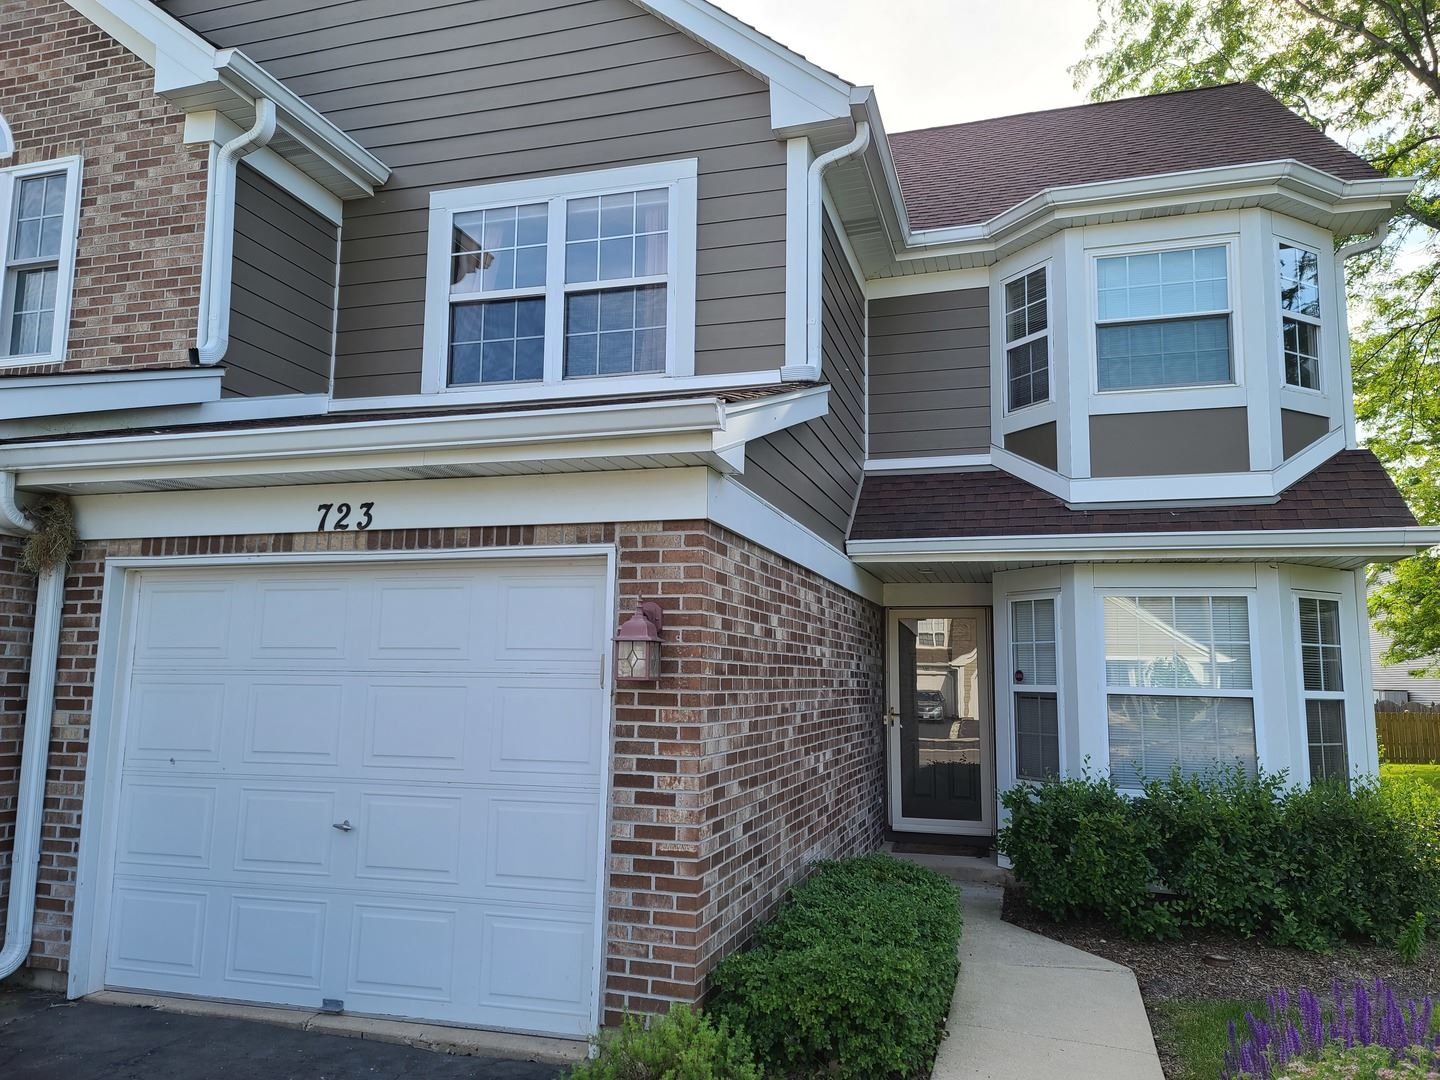 723 KINGSBRIDGE Drive, Carol Stream, IL 60188 - #: 10712721